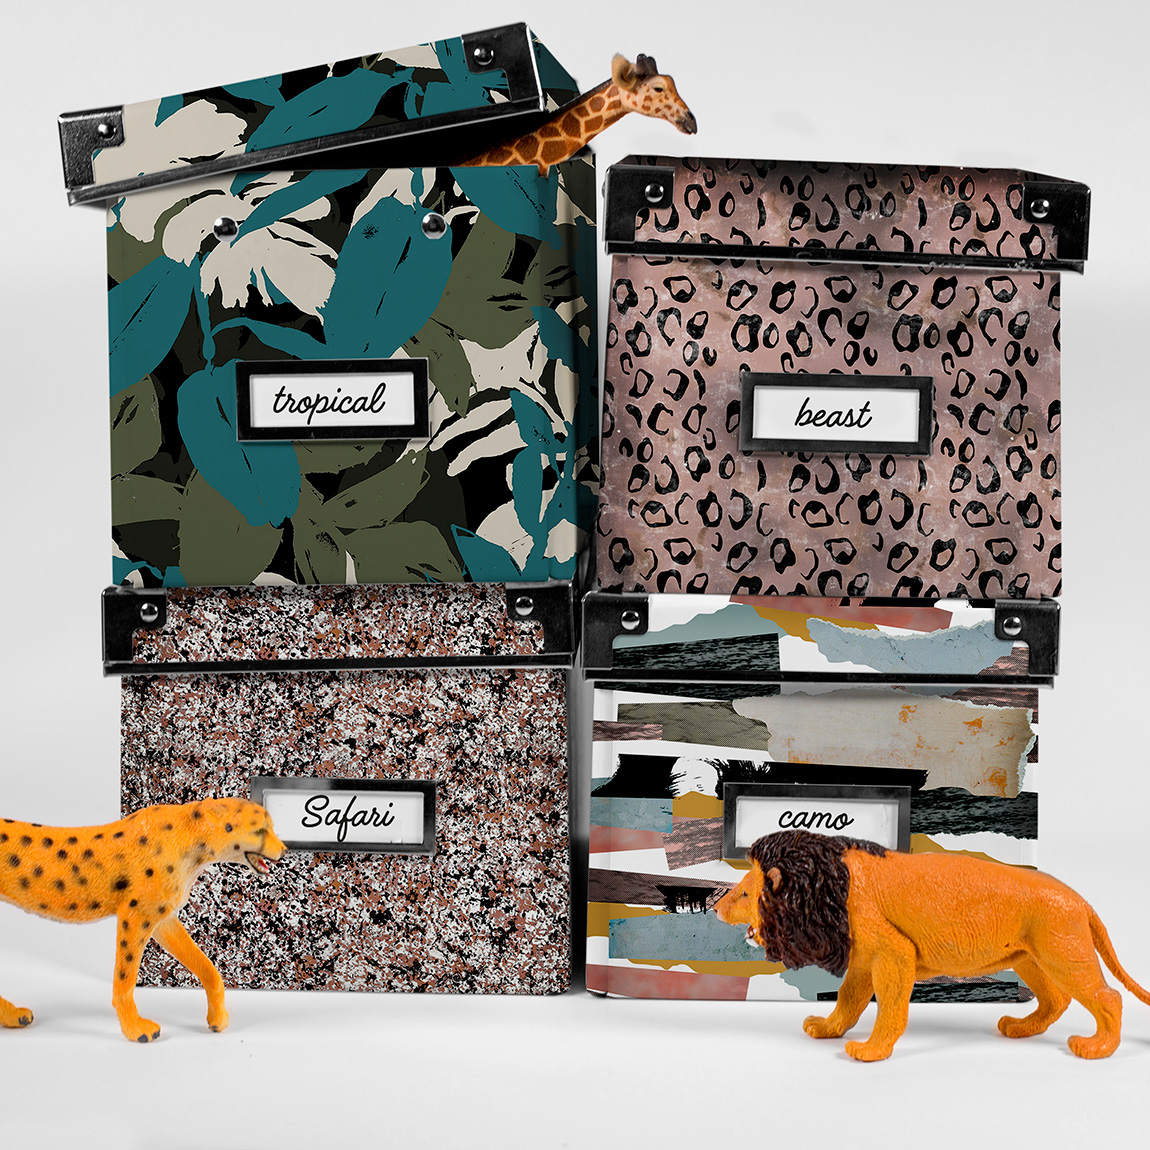 pieceofchic-stationnary-02